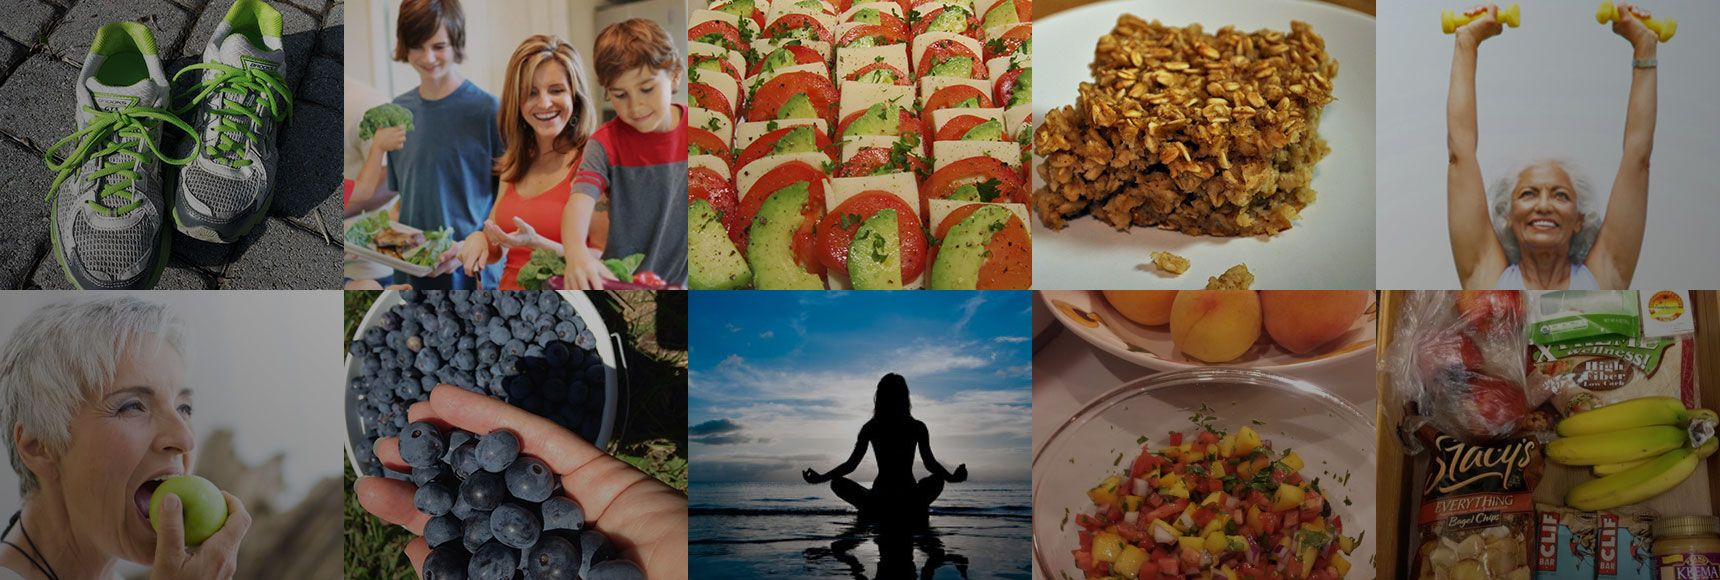 A grid of random stock photos related to dieting and exercise